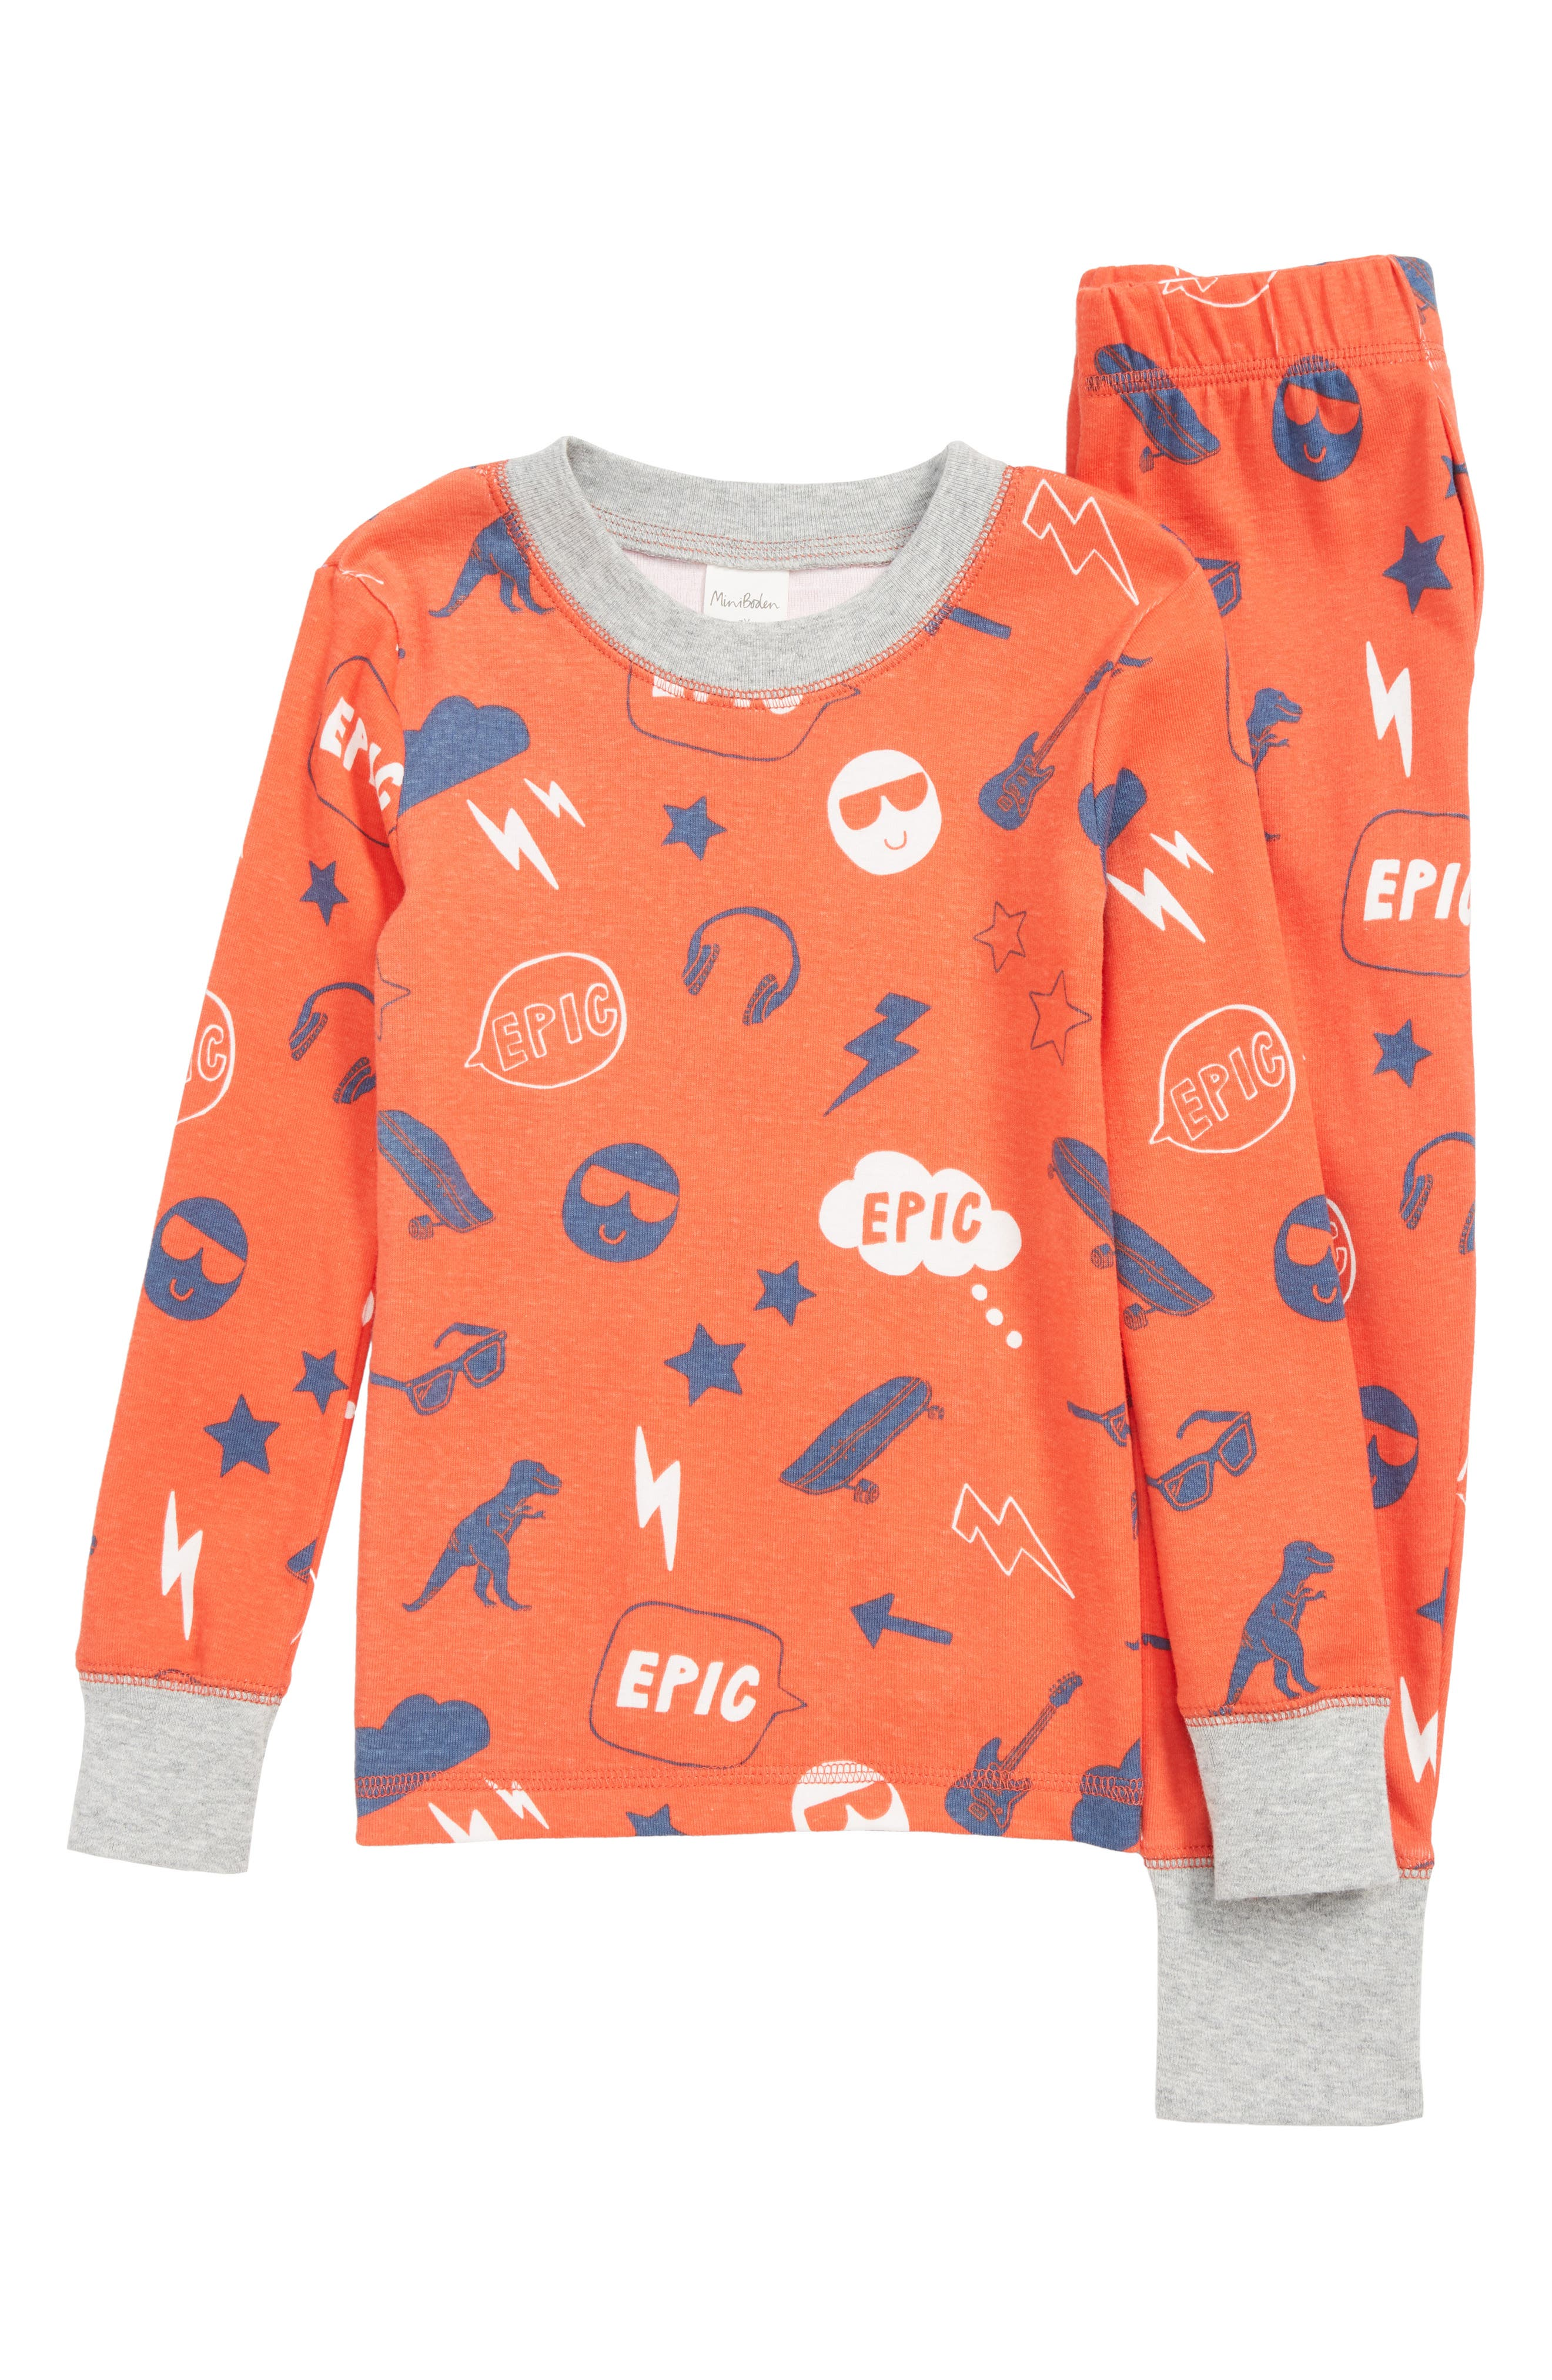 BODEN,                             Mini Boden Glow in the Dark Fitted Two-Piece Pajamas,                             Main thumbnail 1, color,                             RED BEAM RED EMOJI